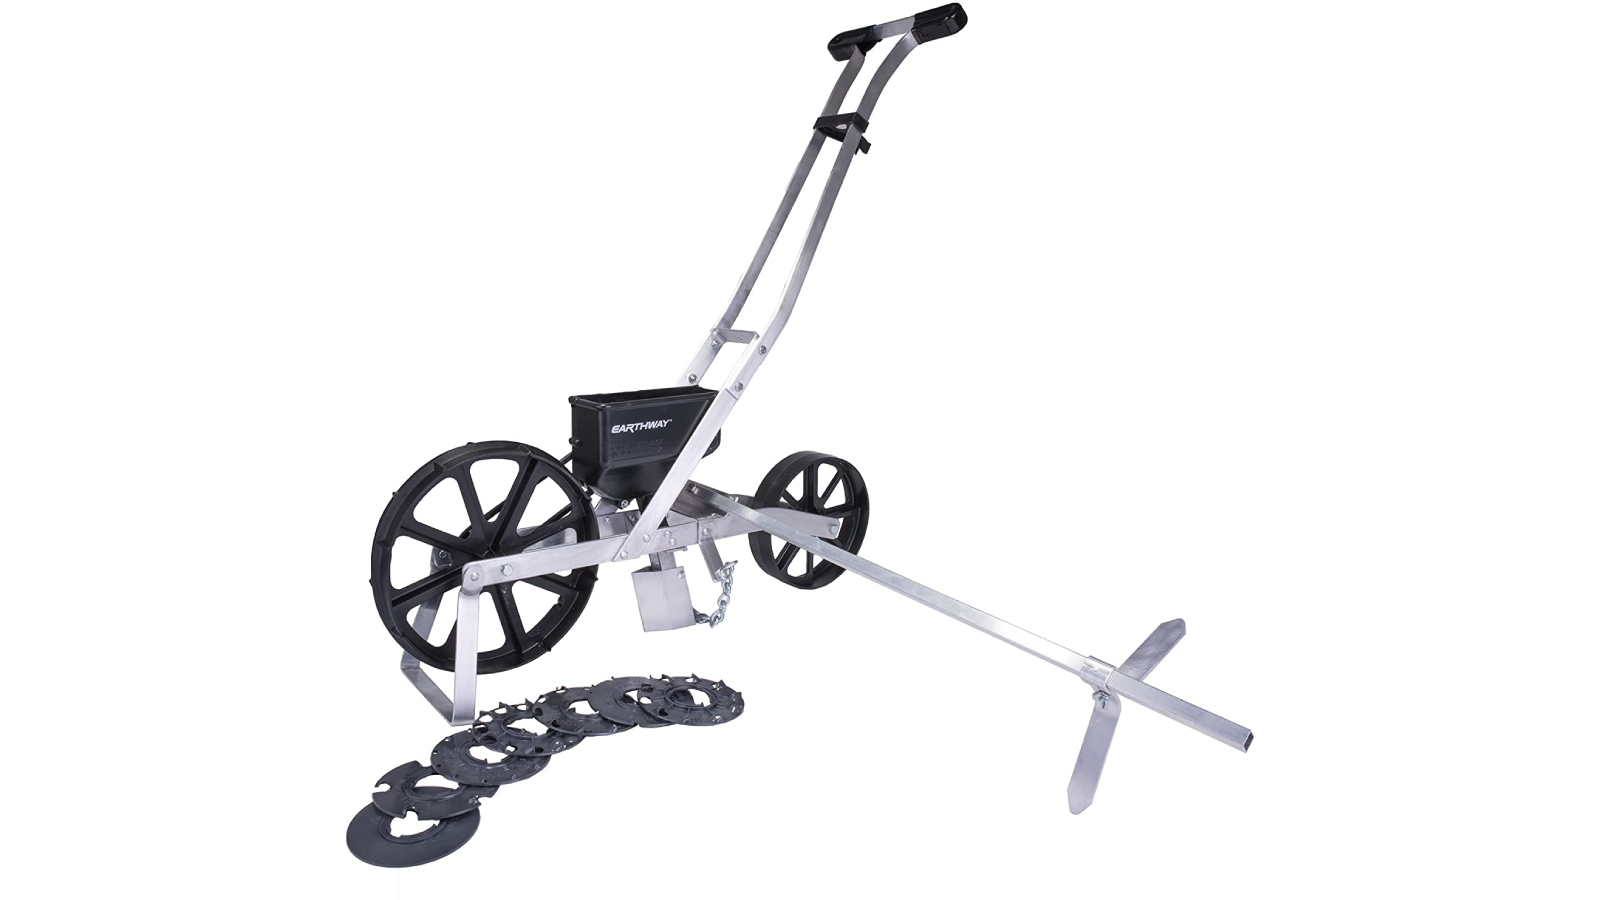 Push seed spreader with 7 seed plates displayed on ground